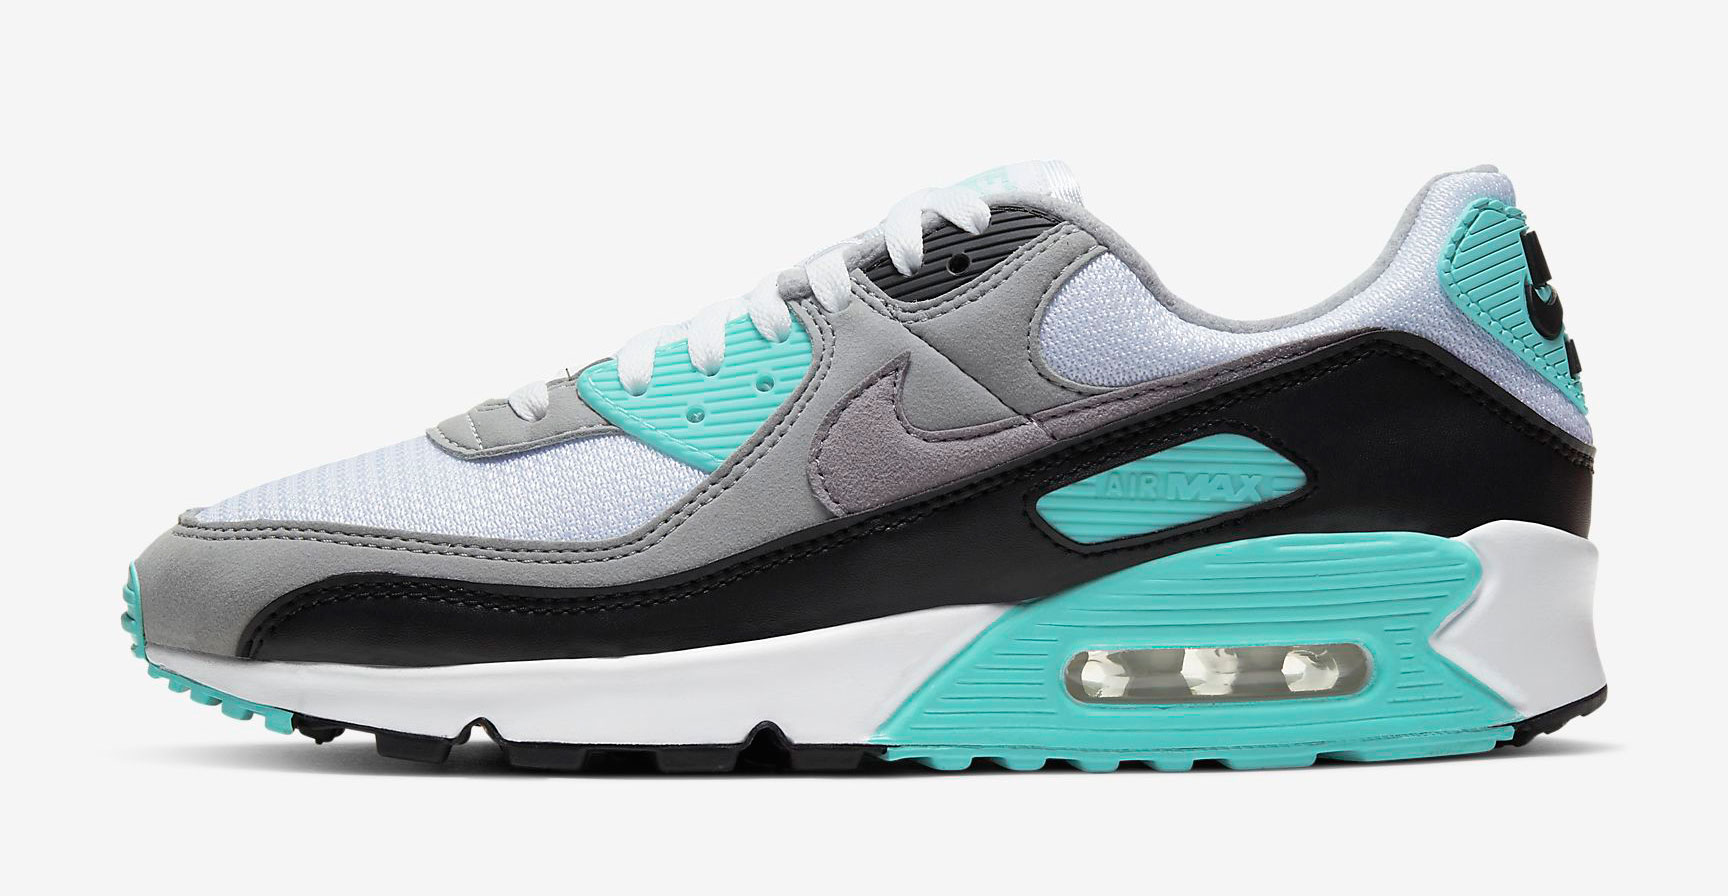 nike-air-max-90-hyper-turquoise-release-date-price-2